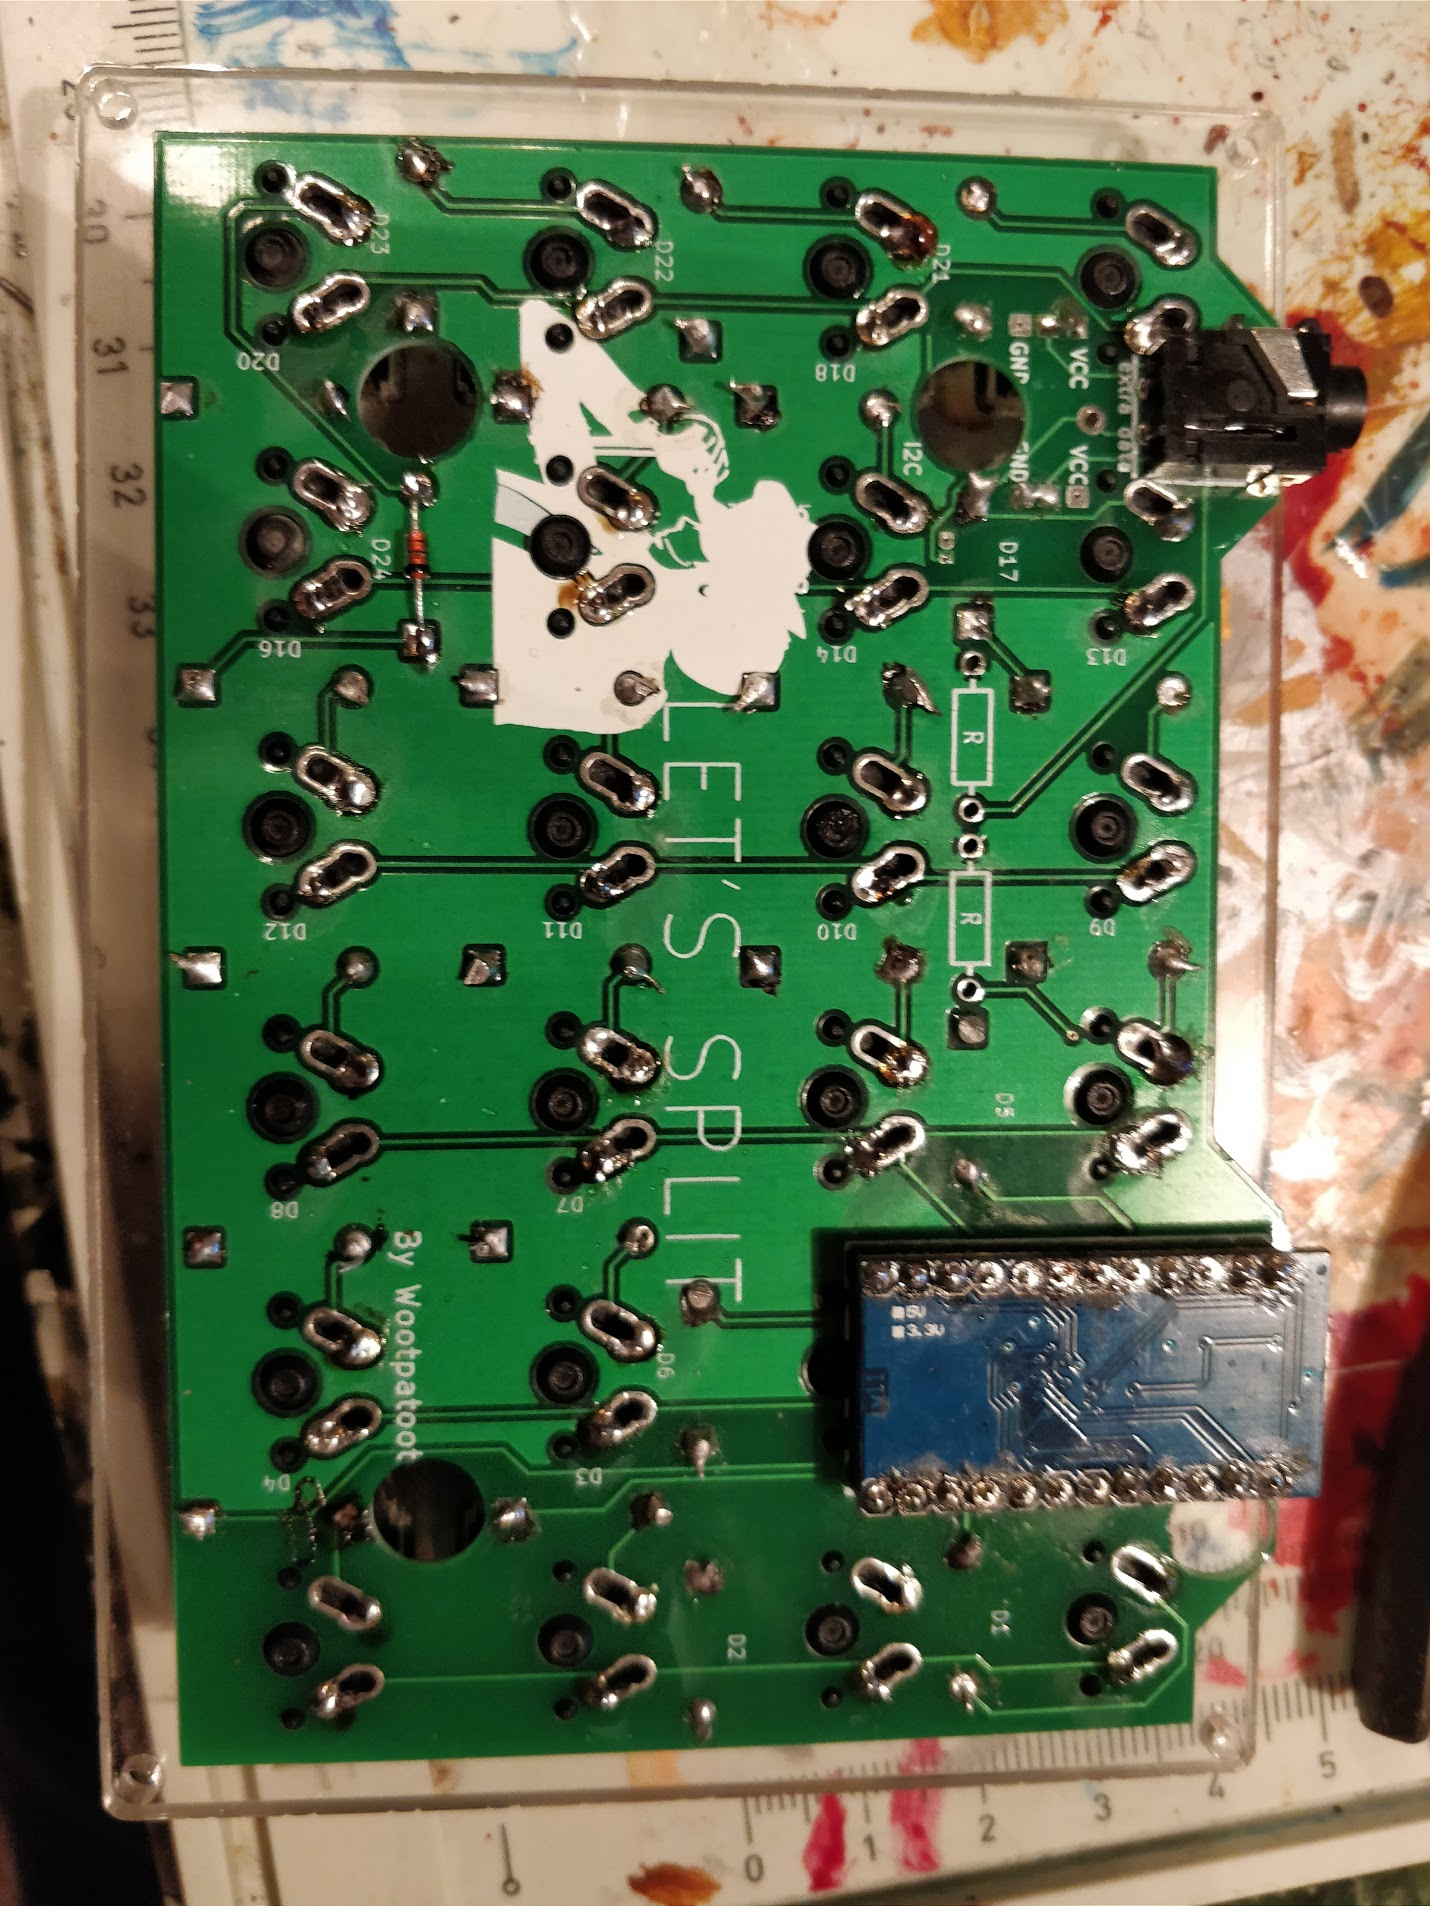 How I Built My Own Keyboard - By